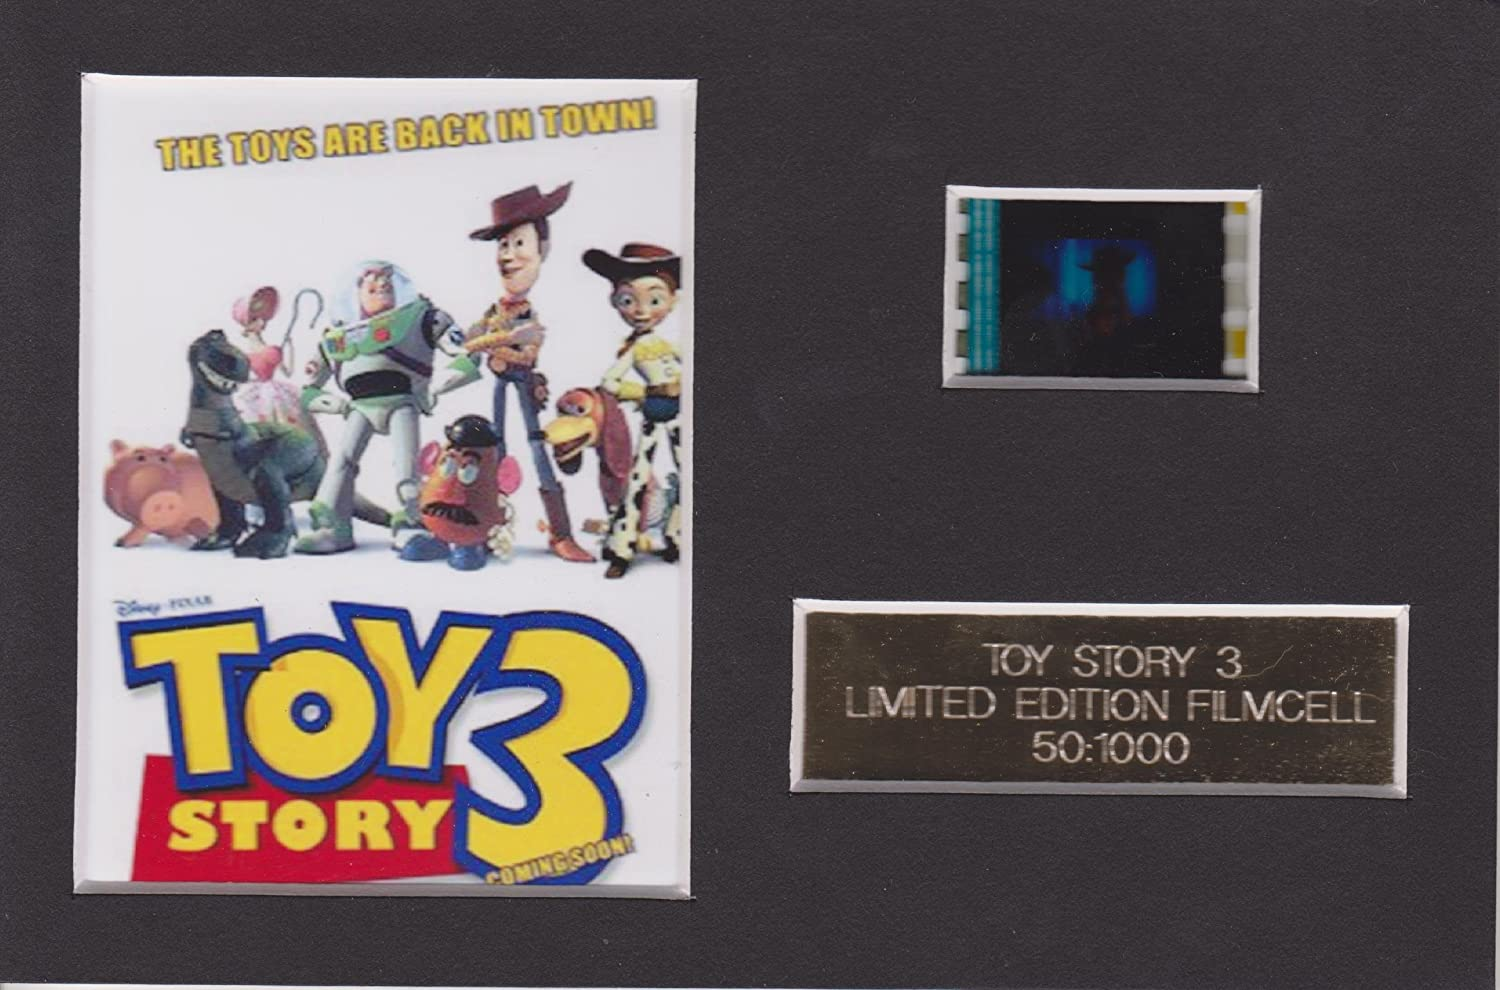 Toy Story 3 Limited Edition Film Cell m